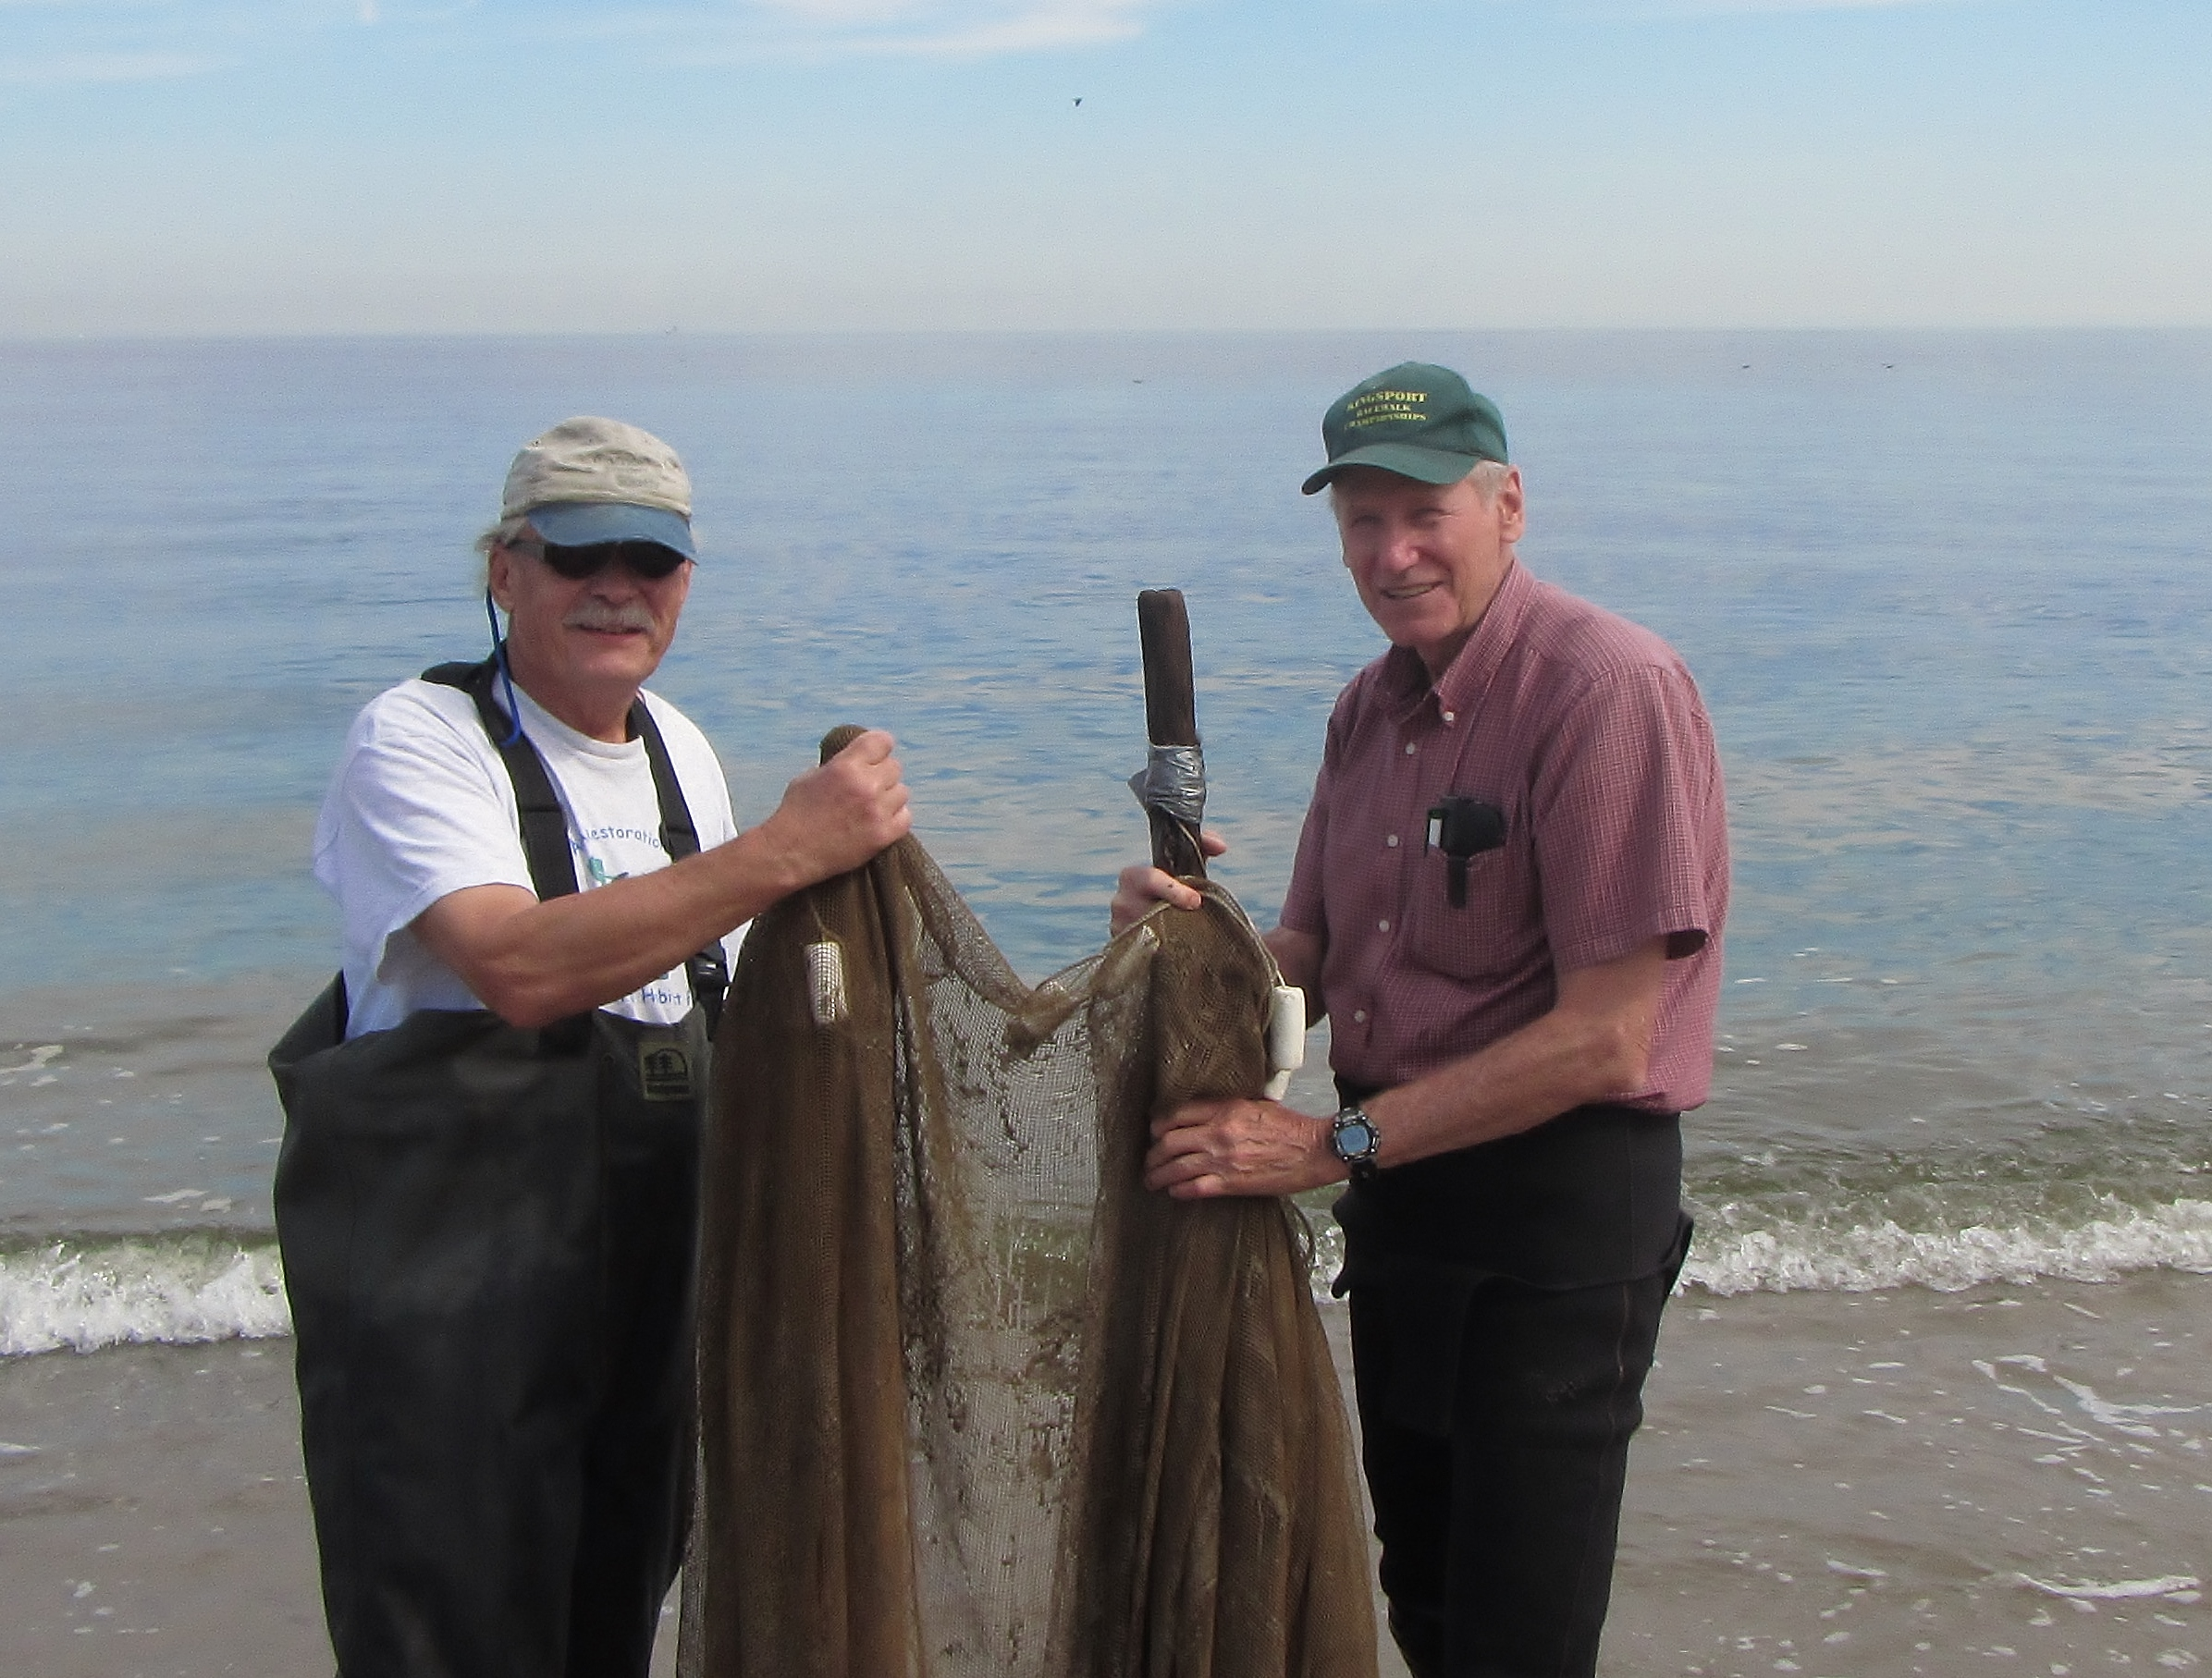 Frank Steimle (left) and Eugene W. Geer Jr (right) - they helped to start a series of organized seining events in 1971 along Raritan Bay and Sandy Hook Bay, NJ to show people what fish and crabs lived in local waters They were the inspiration for Save Coastal Wildlife's seining events along the Jersey Shore.